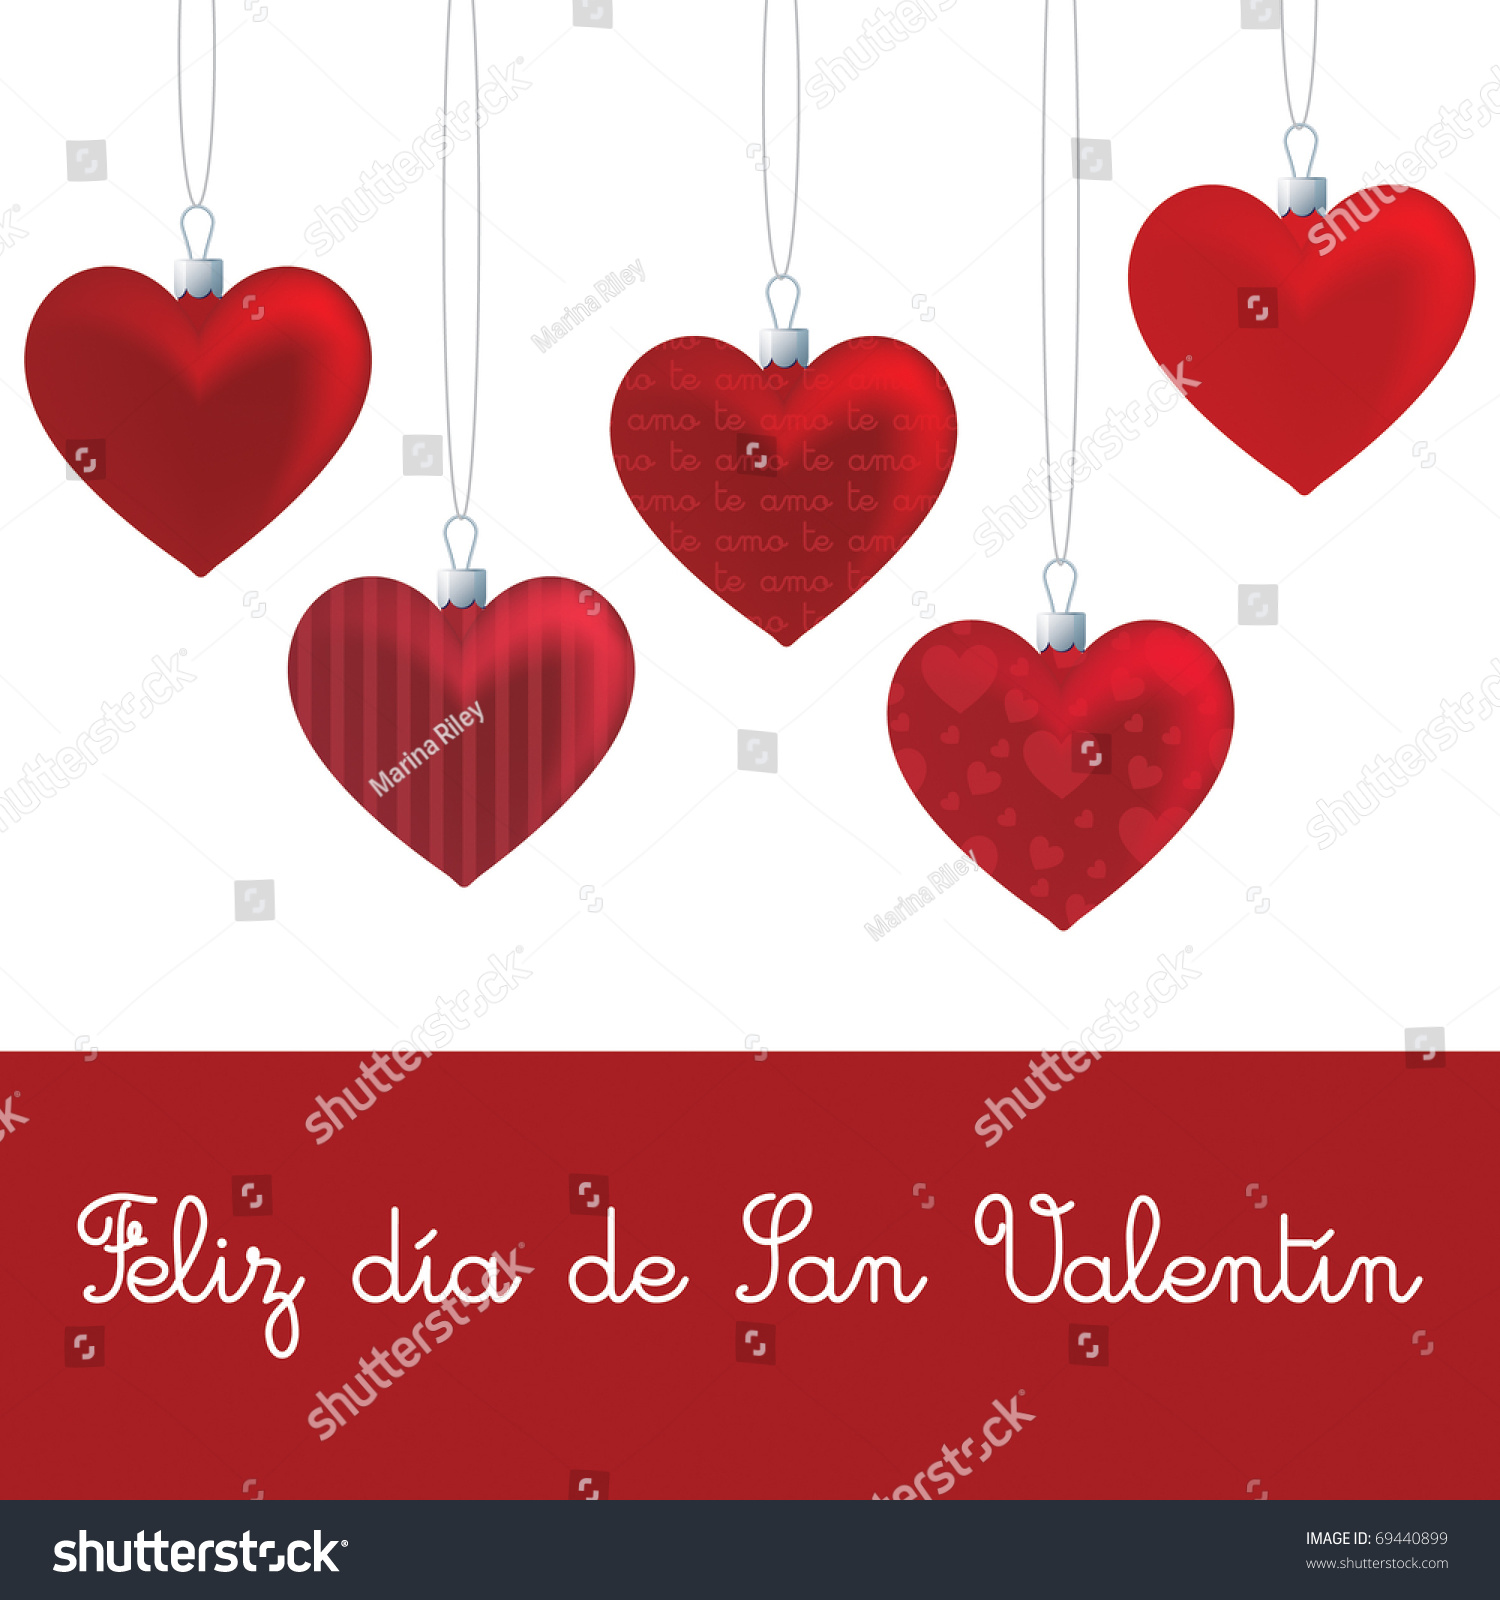 Valentines Day Card Template Vector 69440899 Shutterstock – Valentines Card Template